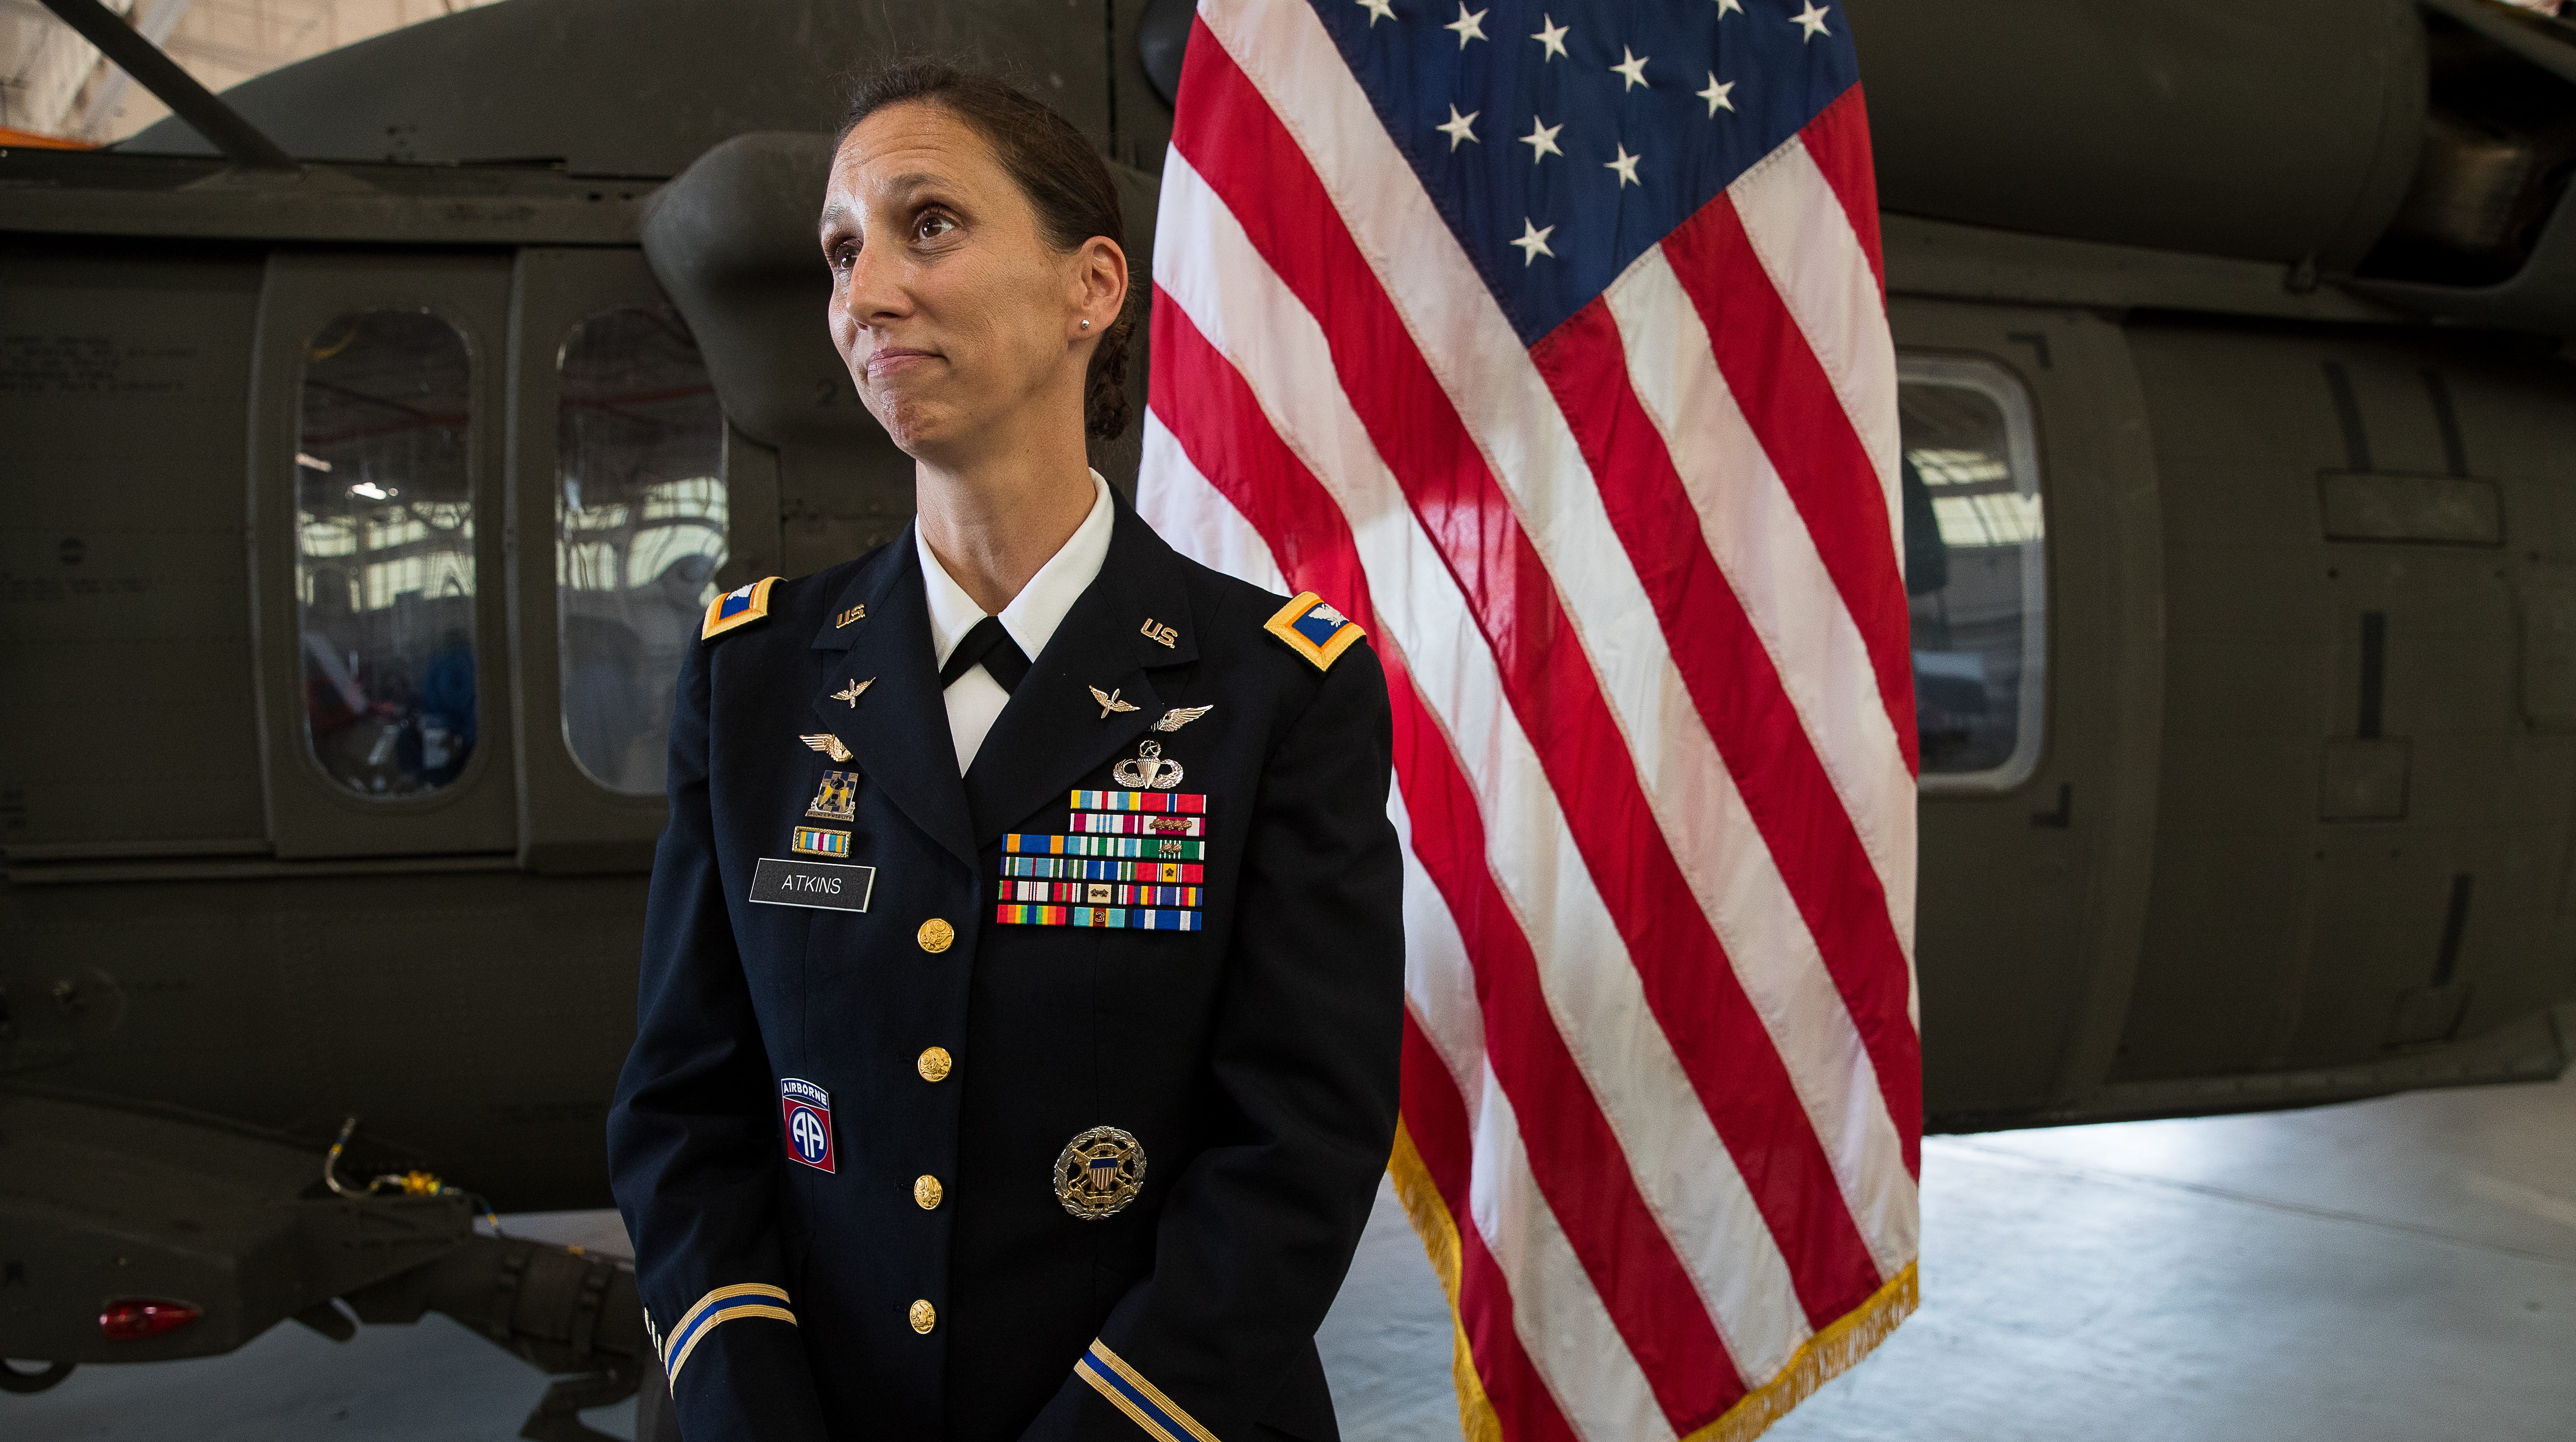 Col. Gail Atkins the new commander of the Corpus Christi Army Depot's speaks after the change of command ceremony at the base on Friday, July 20, 2018.